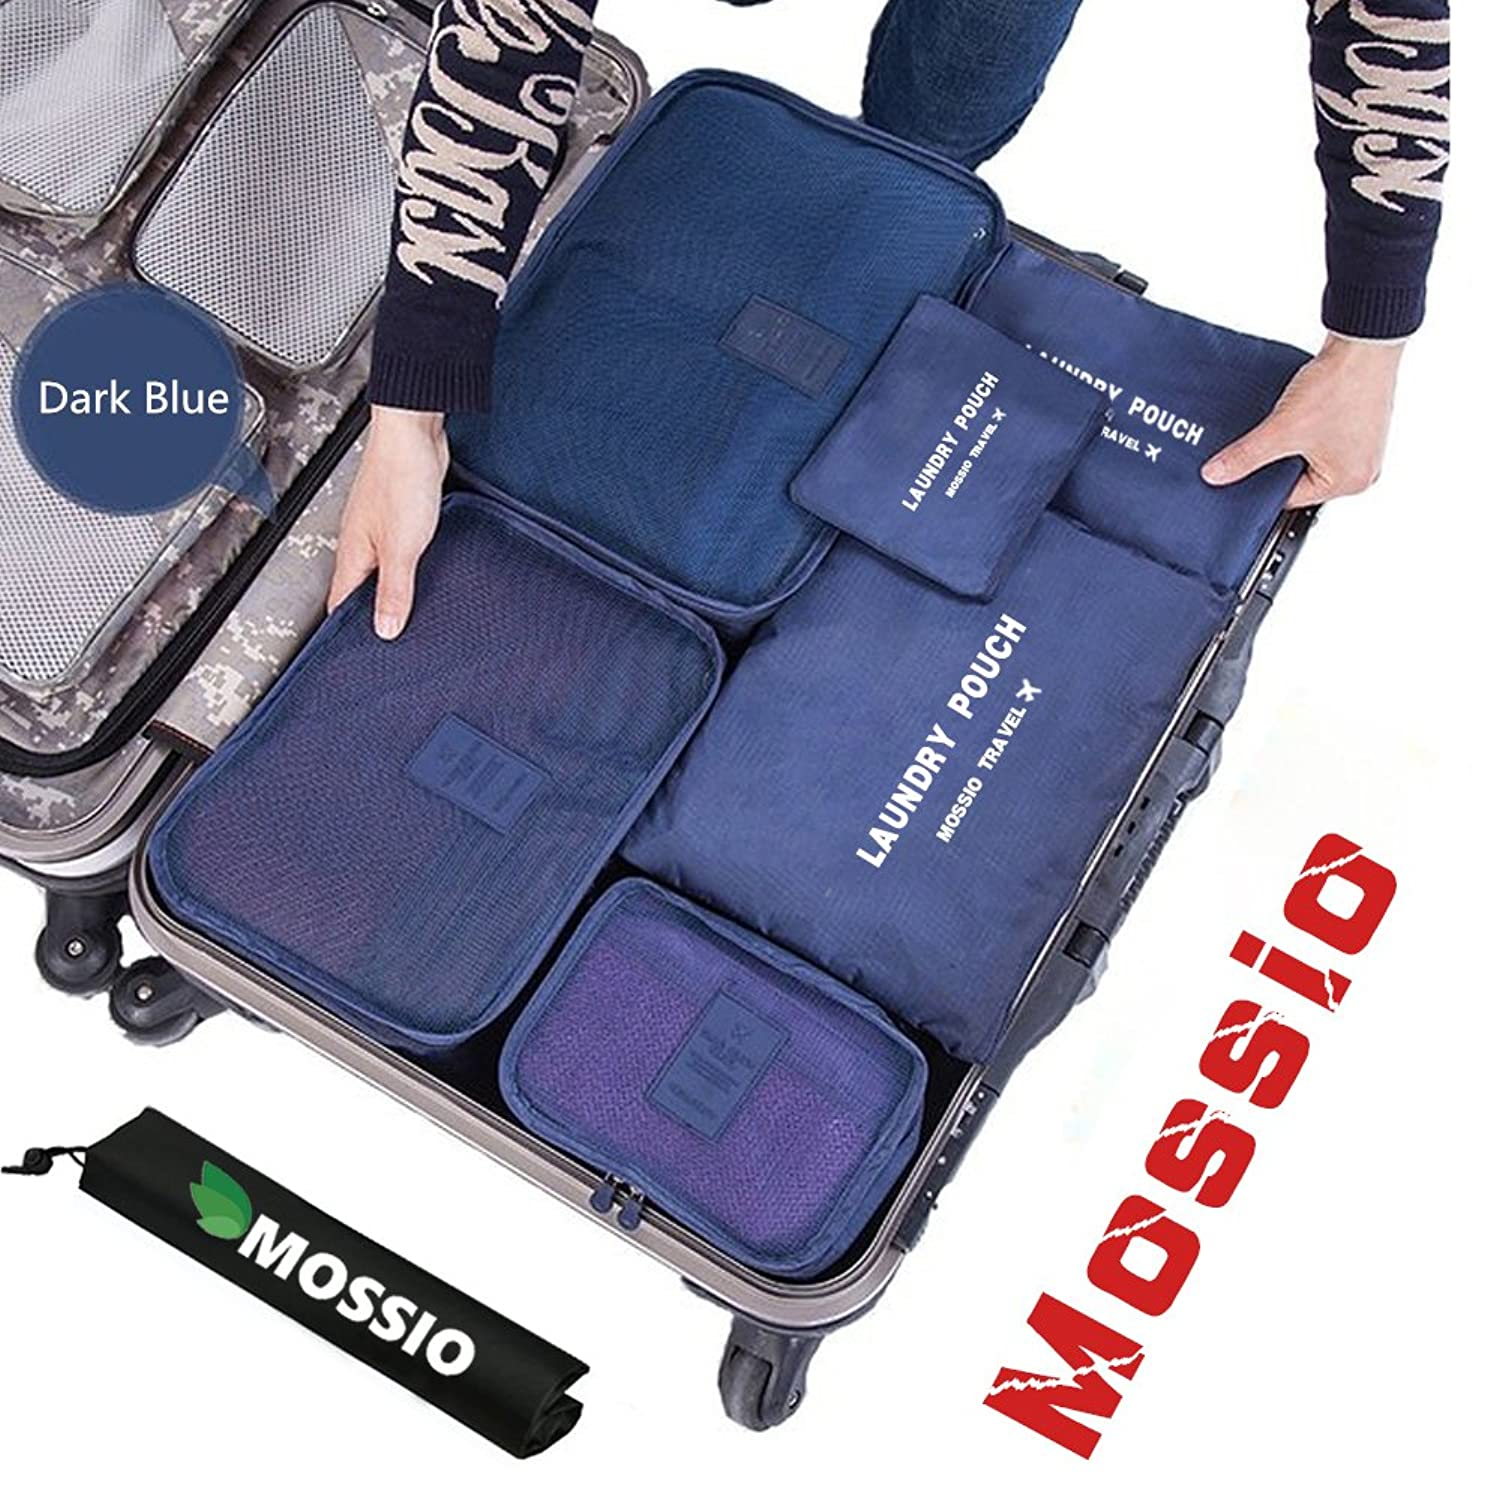 Marvelous Amazon.com | Packing Cubes, Mossio 7 Sets Waterproof Lightweight Laundry  Organizer Dark Blue | Packing Organizers